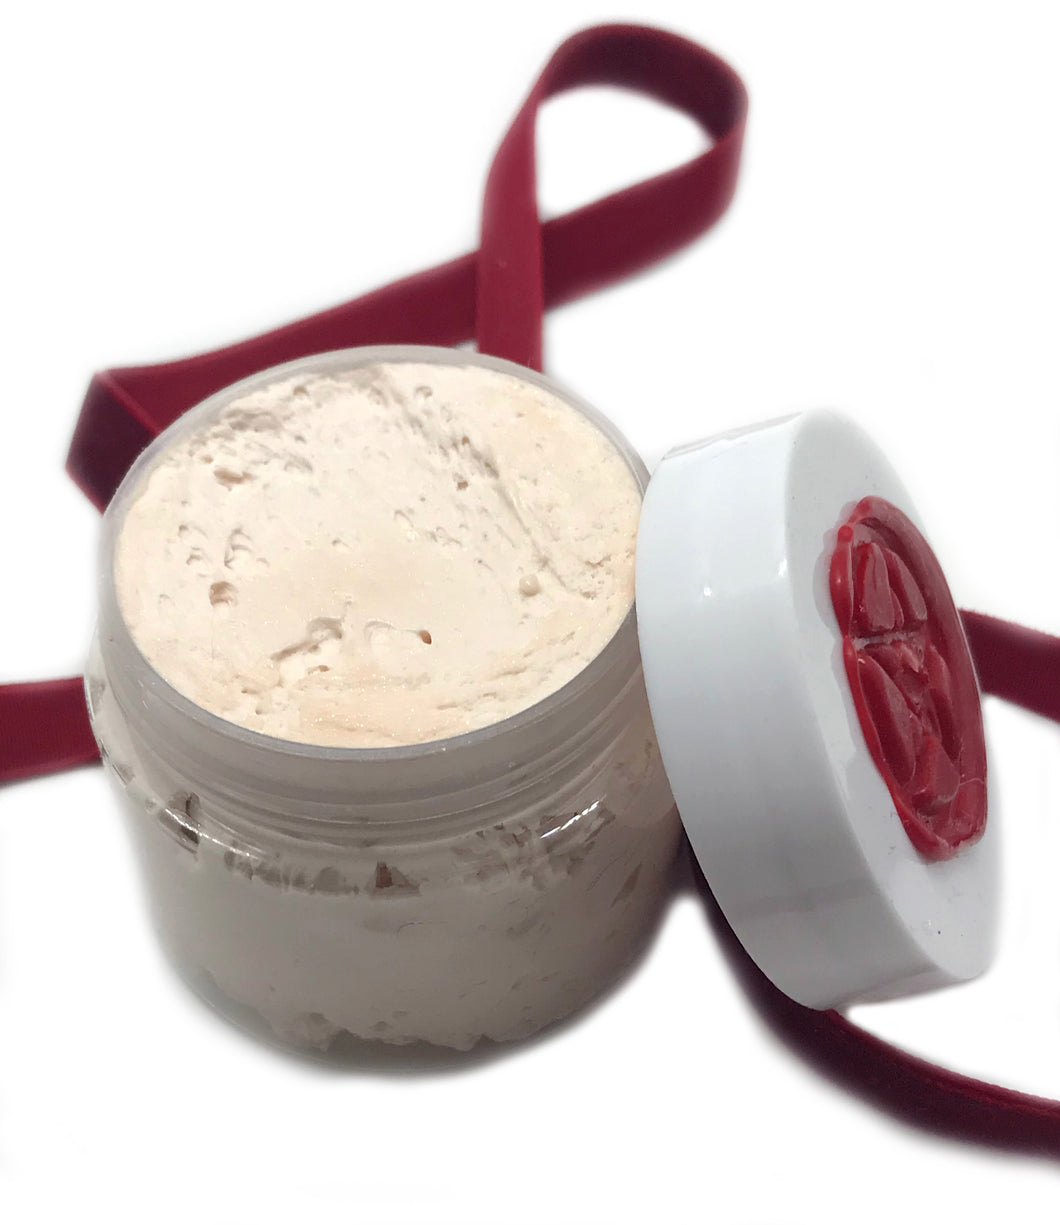 Venus Whipped Body Butter